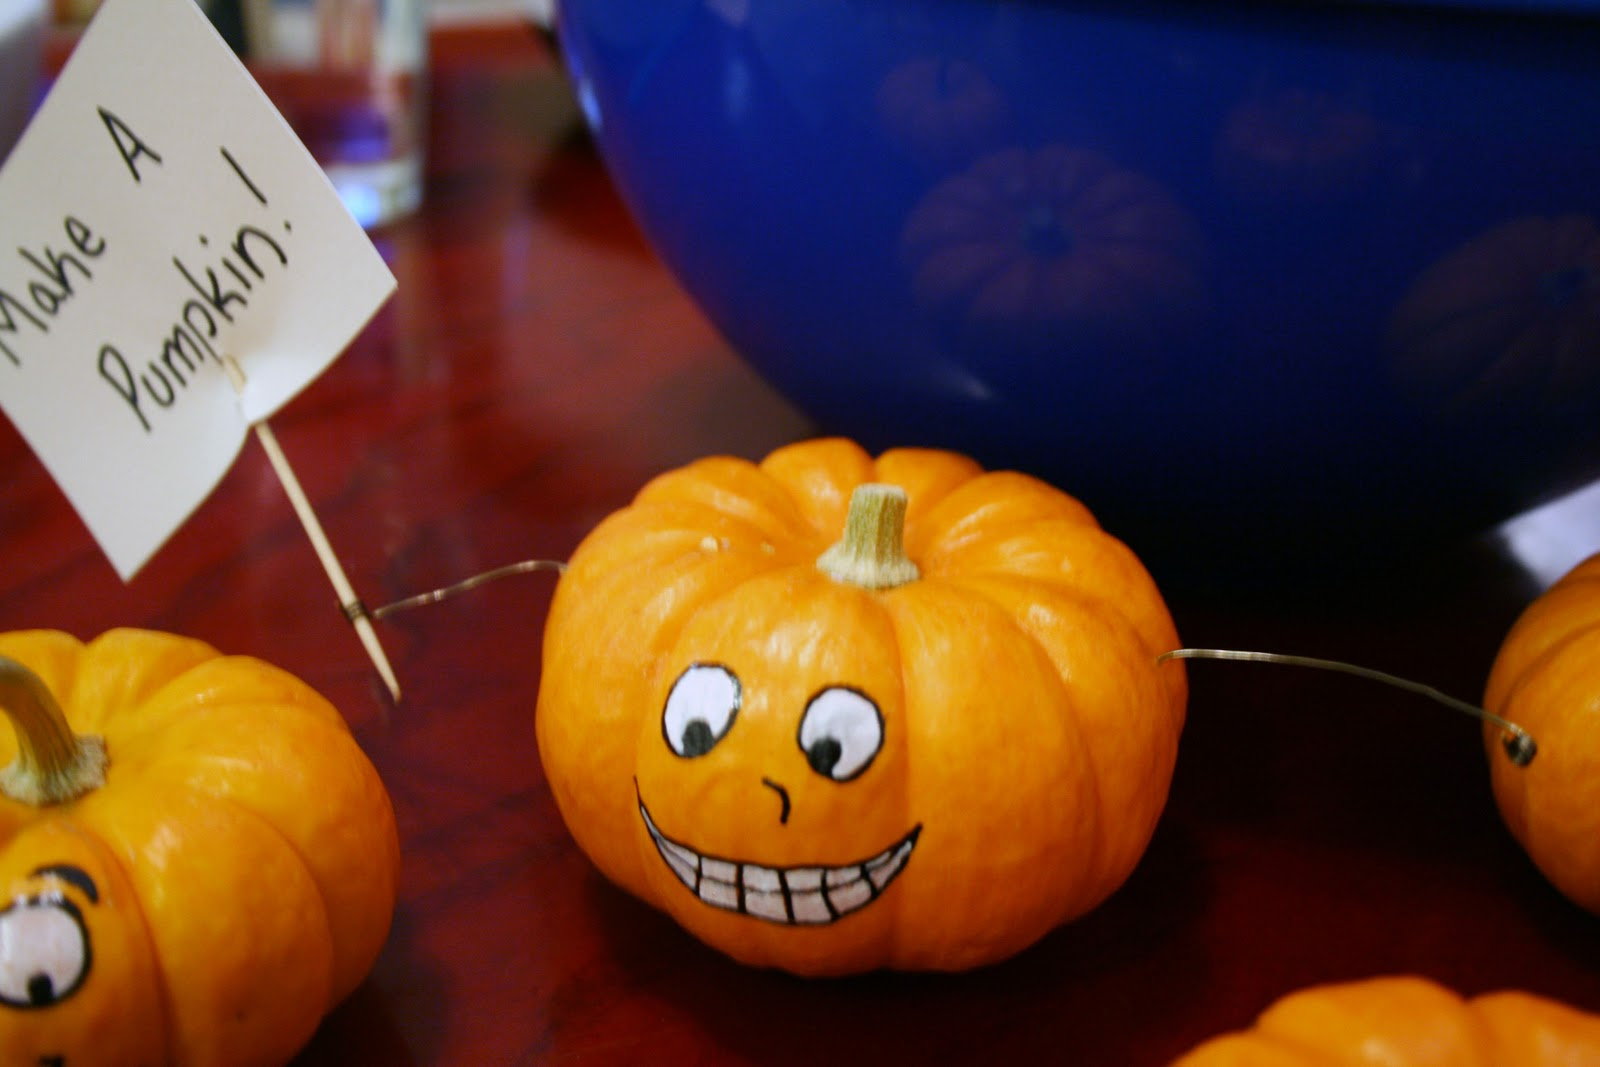 Mini pumpkin decorating ideas - But It Turned Out To Be Pretty Fun And Many Of Our Friends Went Home With A Cute Little Pumpkin Here Are Some Picture From The Night